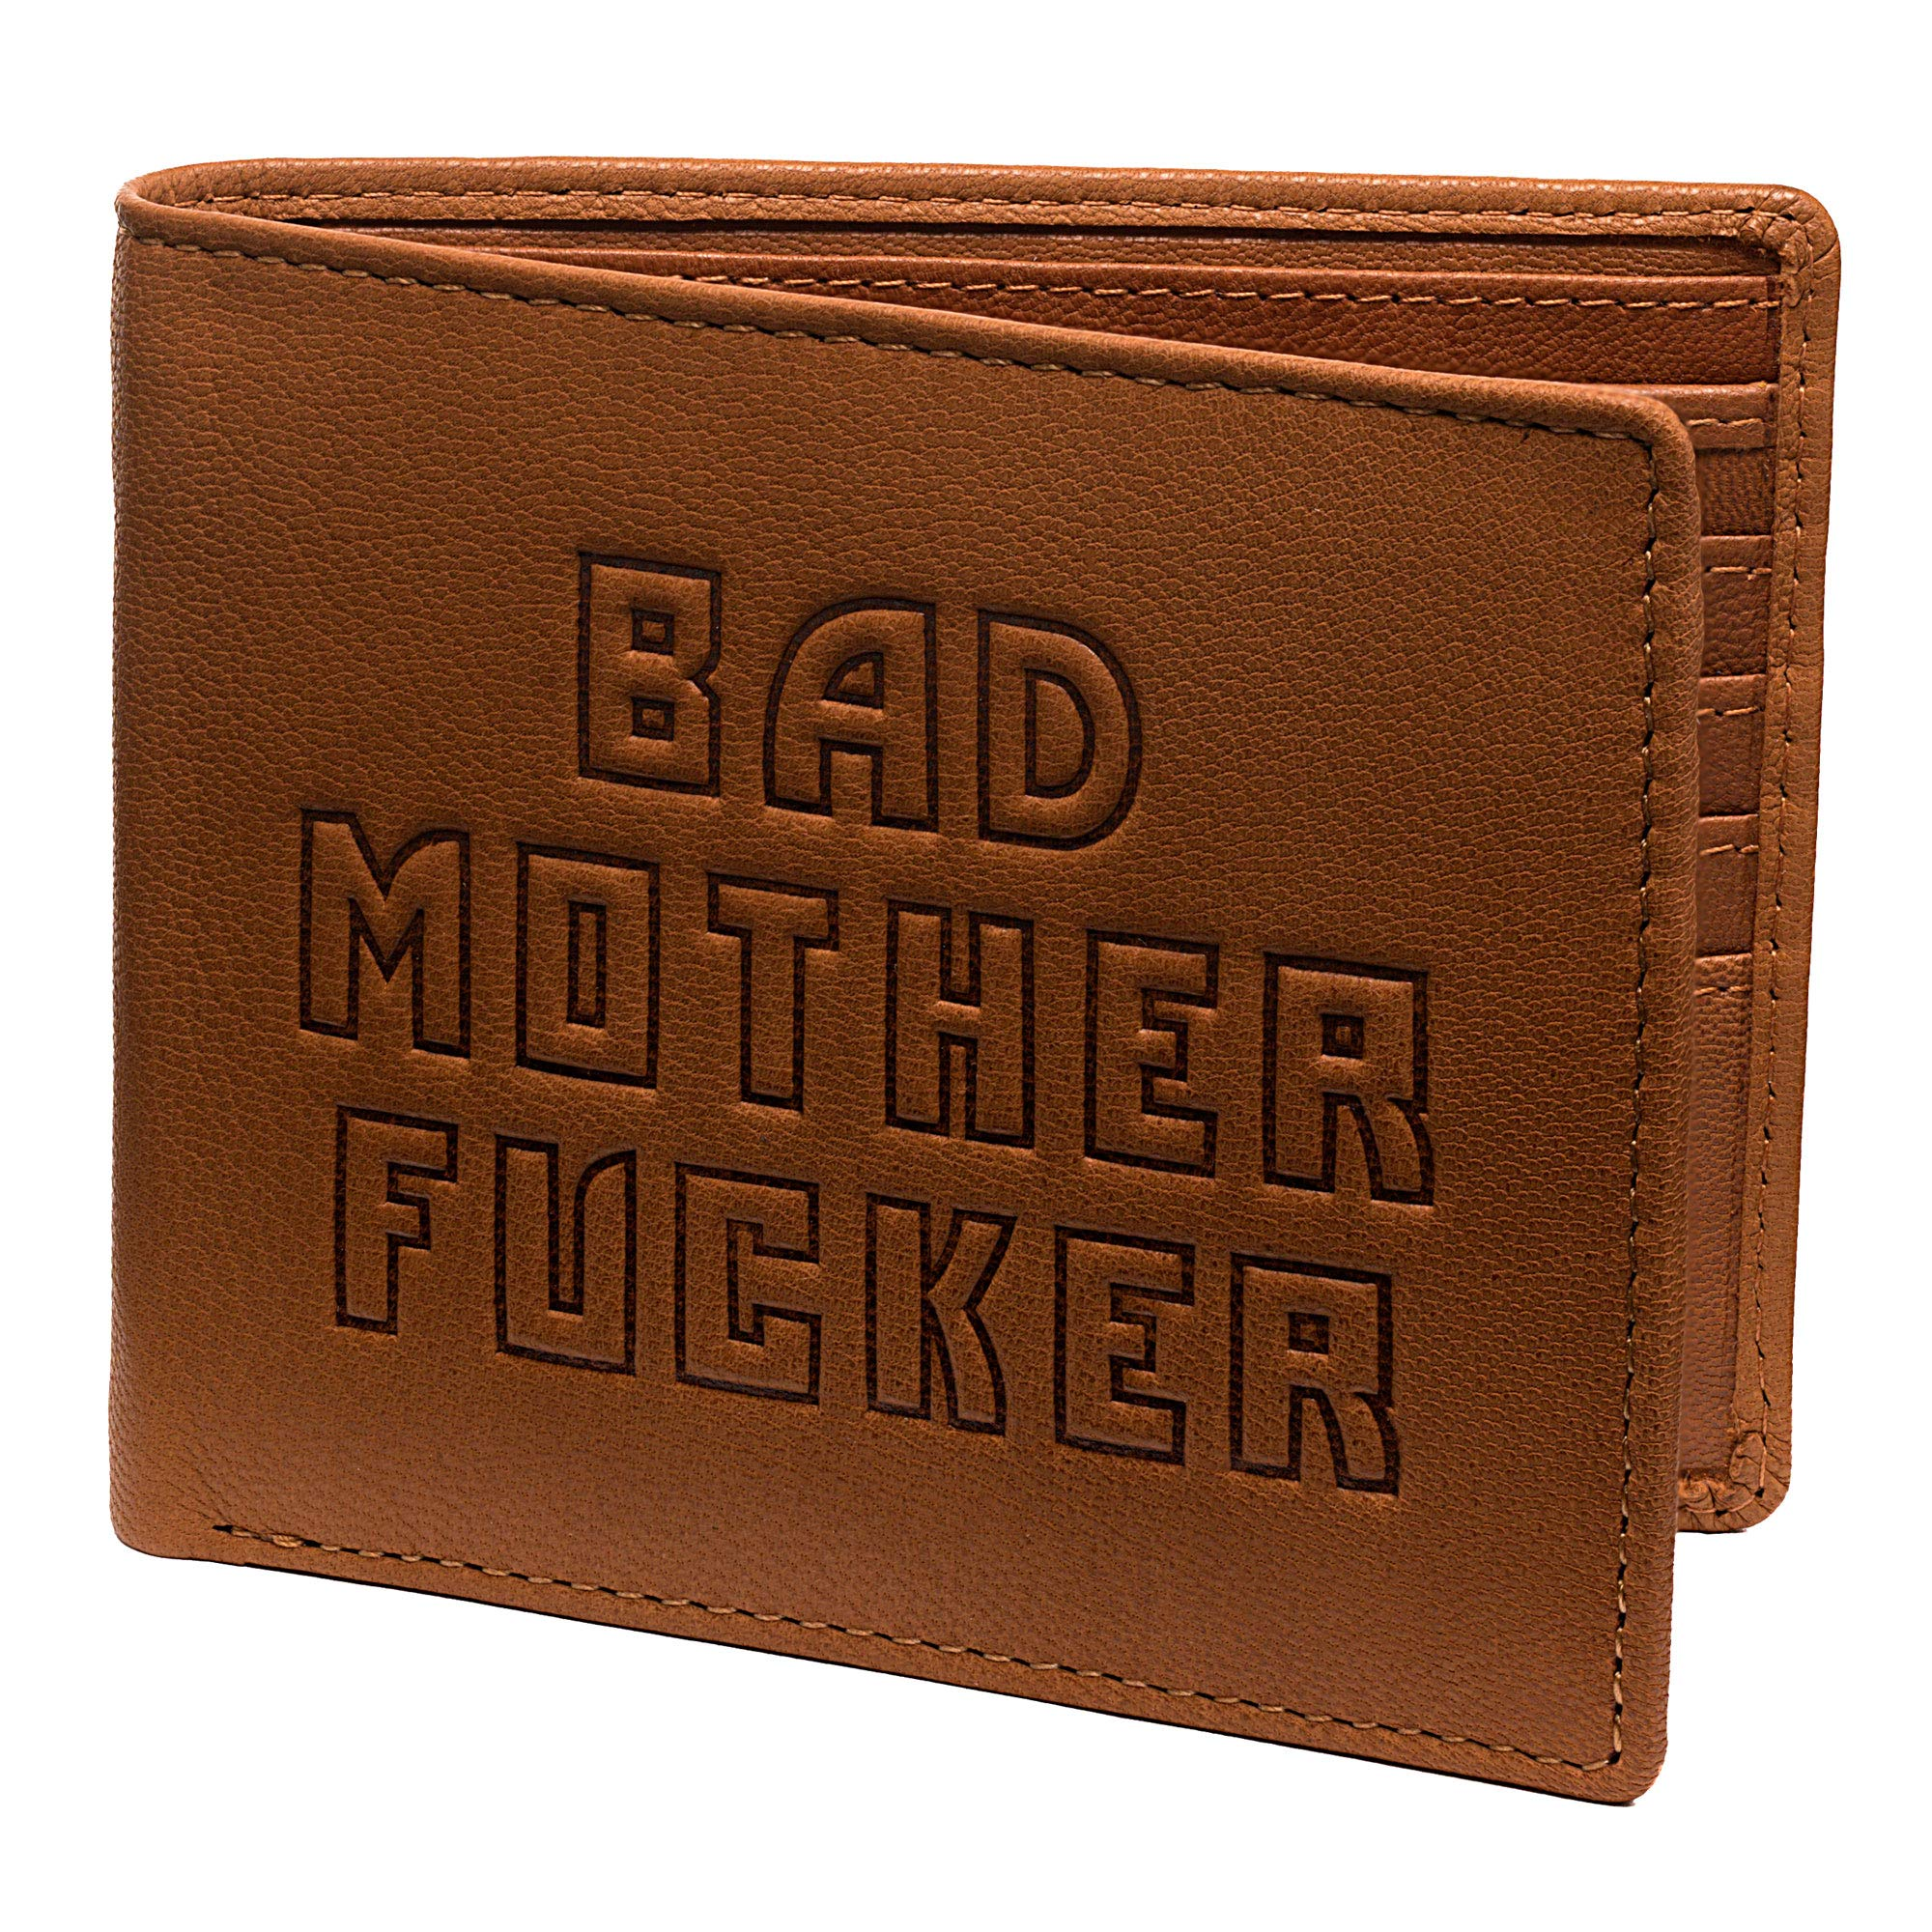 Bad Mother Fucker Wallet - Real Leather - TAN